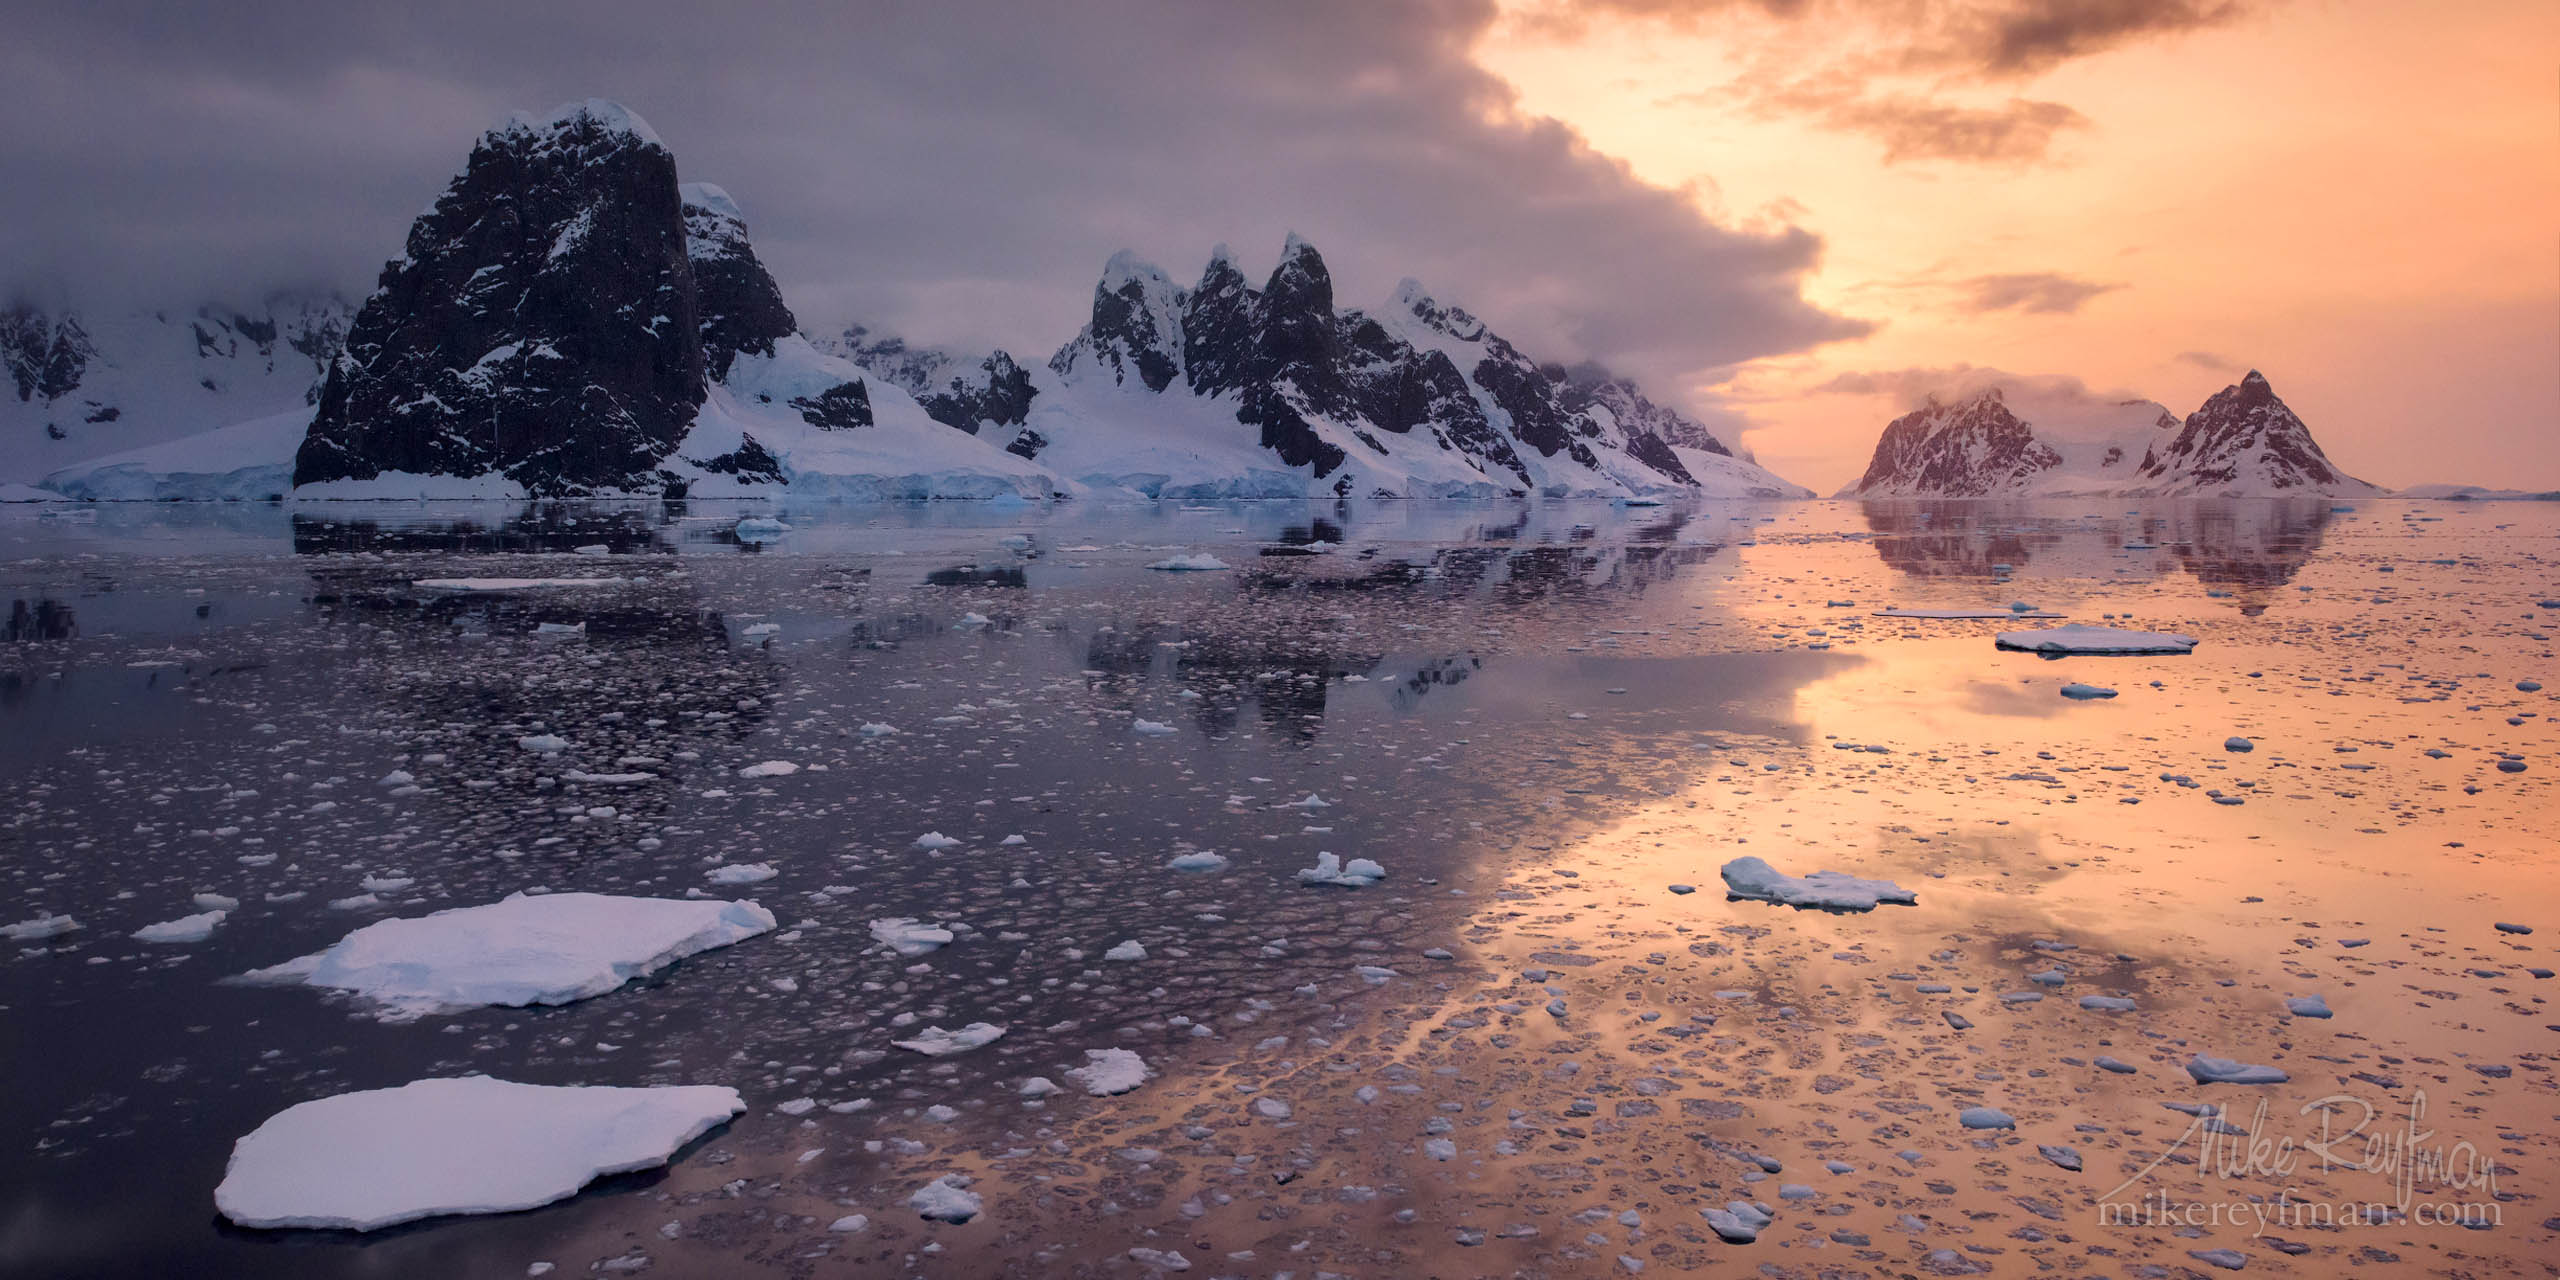 Tranquil evening in Lemaire Channel (the strait off Antarctica between Kiev Peninsula and Booth Island), Antarctic P12-MRD1A3334 - Selected panoramic images with 2:1 aspect ratio - Mike Reyfman Photography